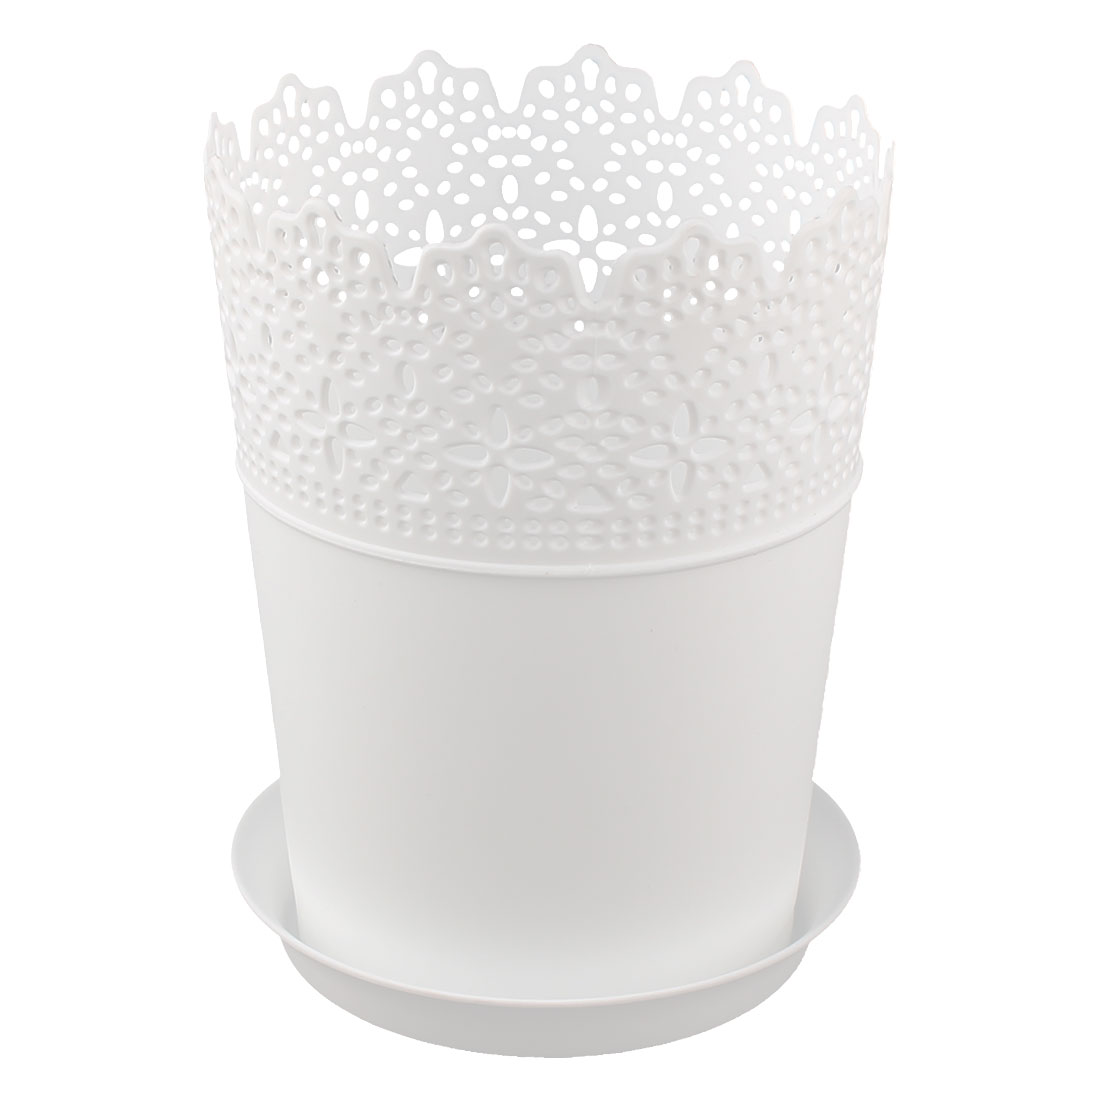 16cm Height White Plastic Lace Plant Planter Flower Pot Home Garden Decor w Tray